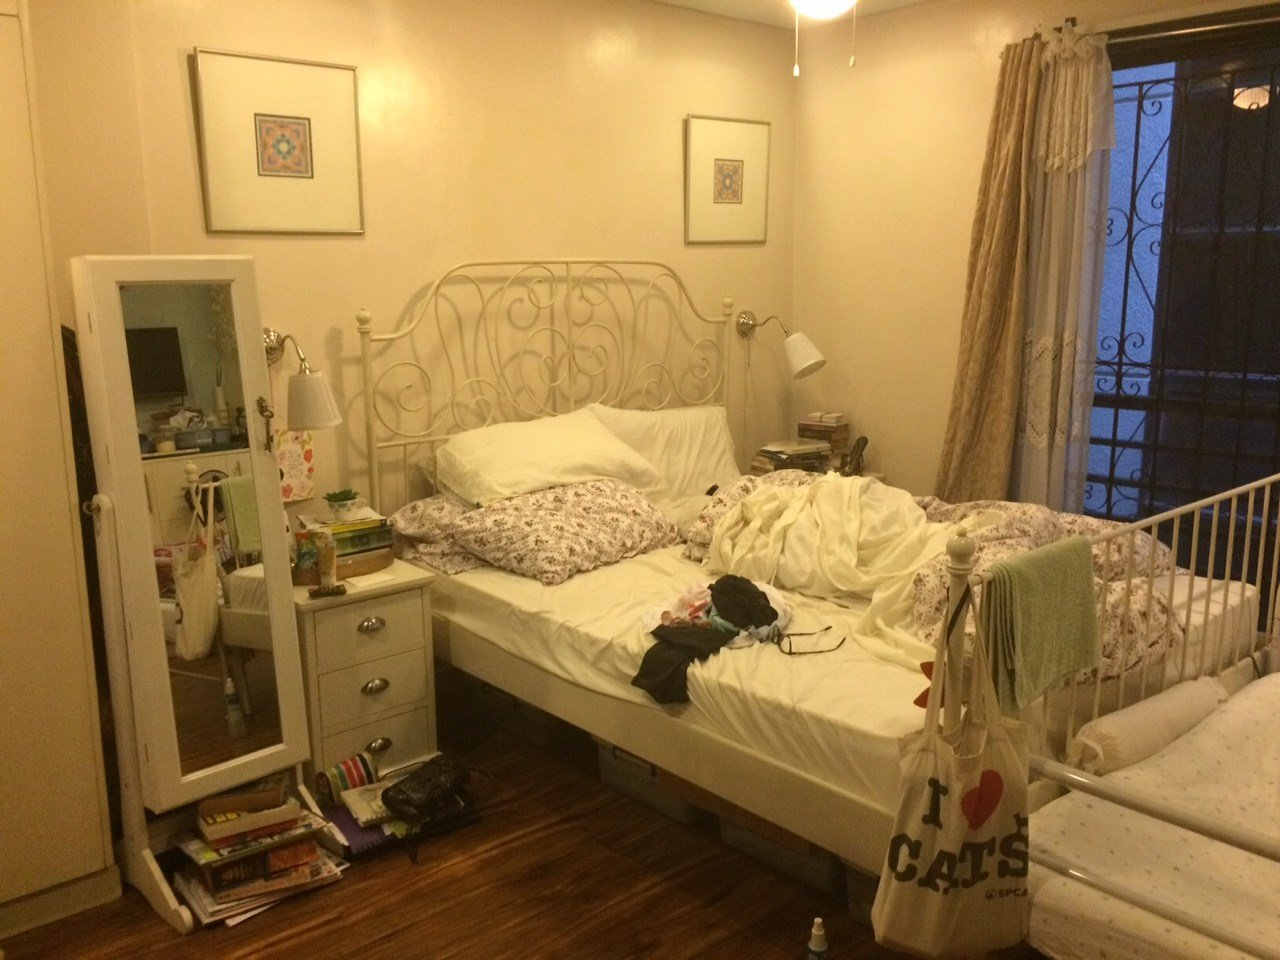 Best Monday Morning How To Clean Up A Messy Room – Gal At Home With Pictures